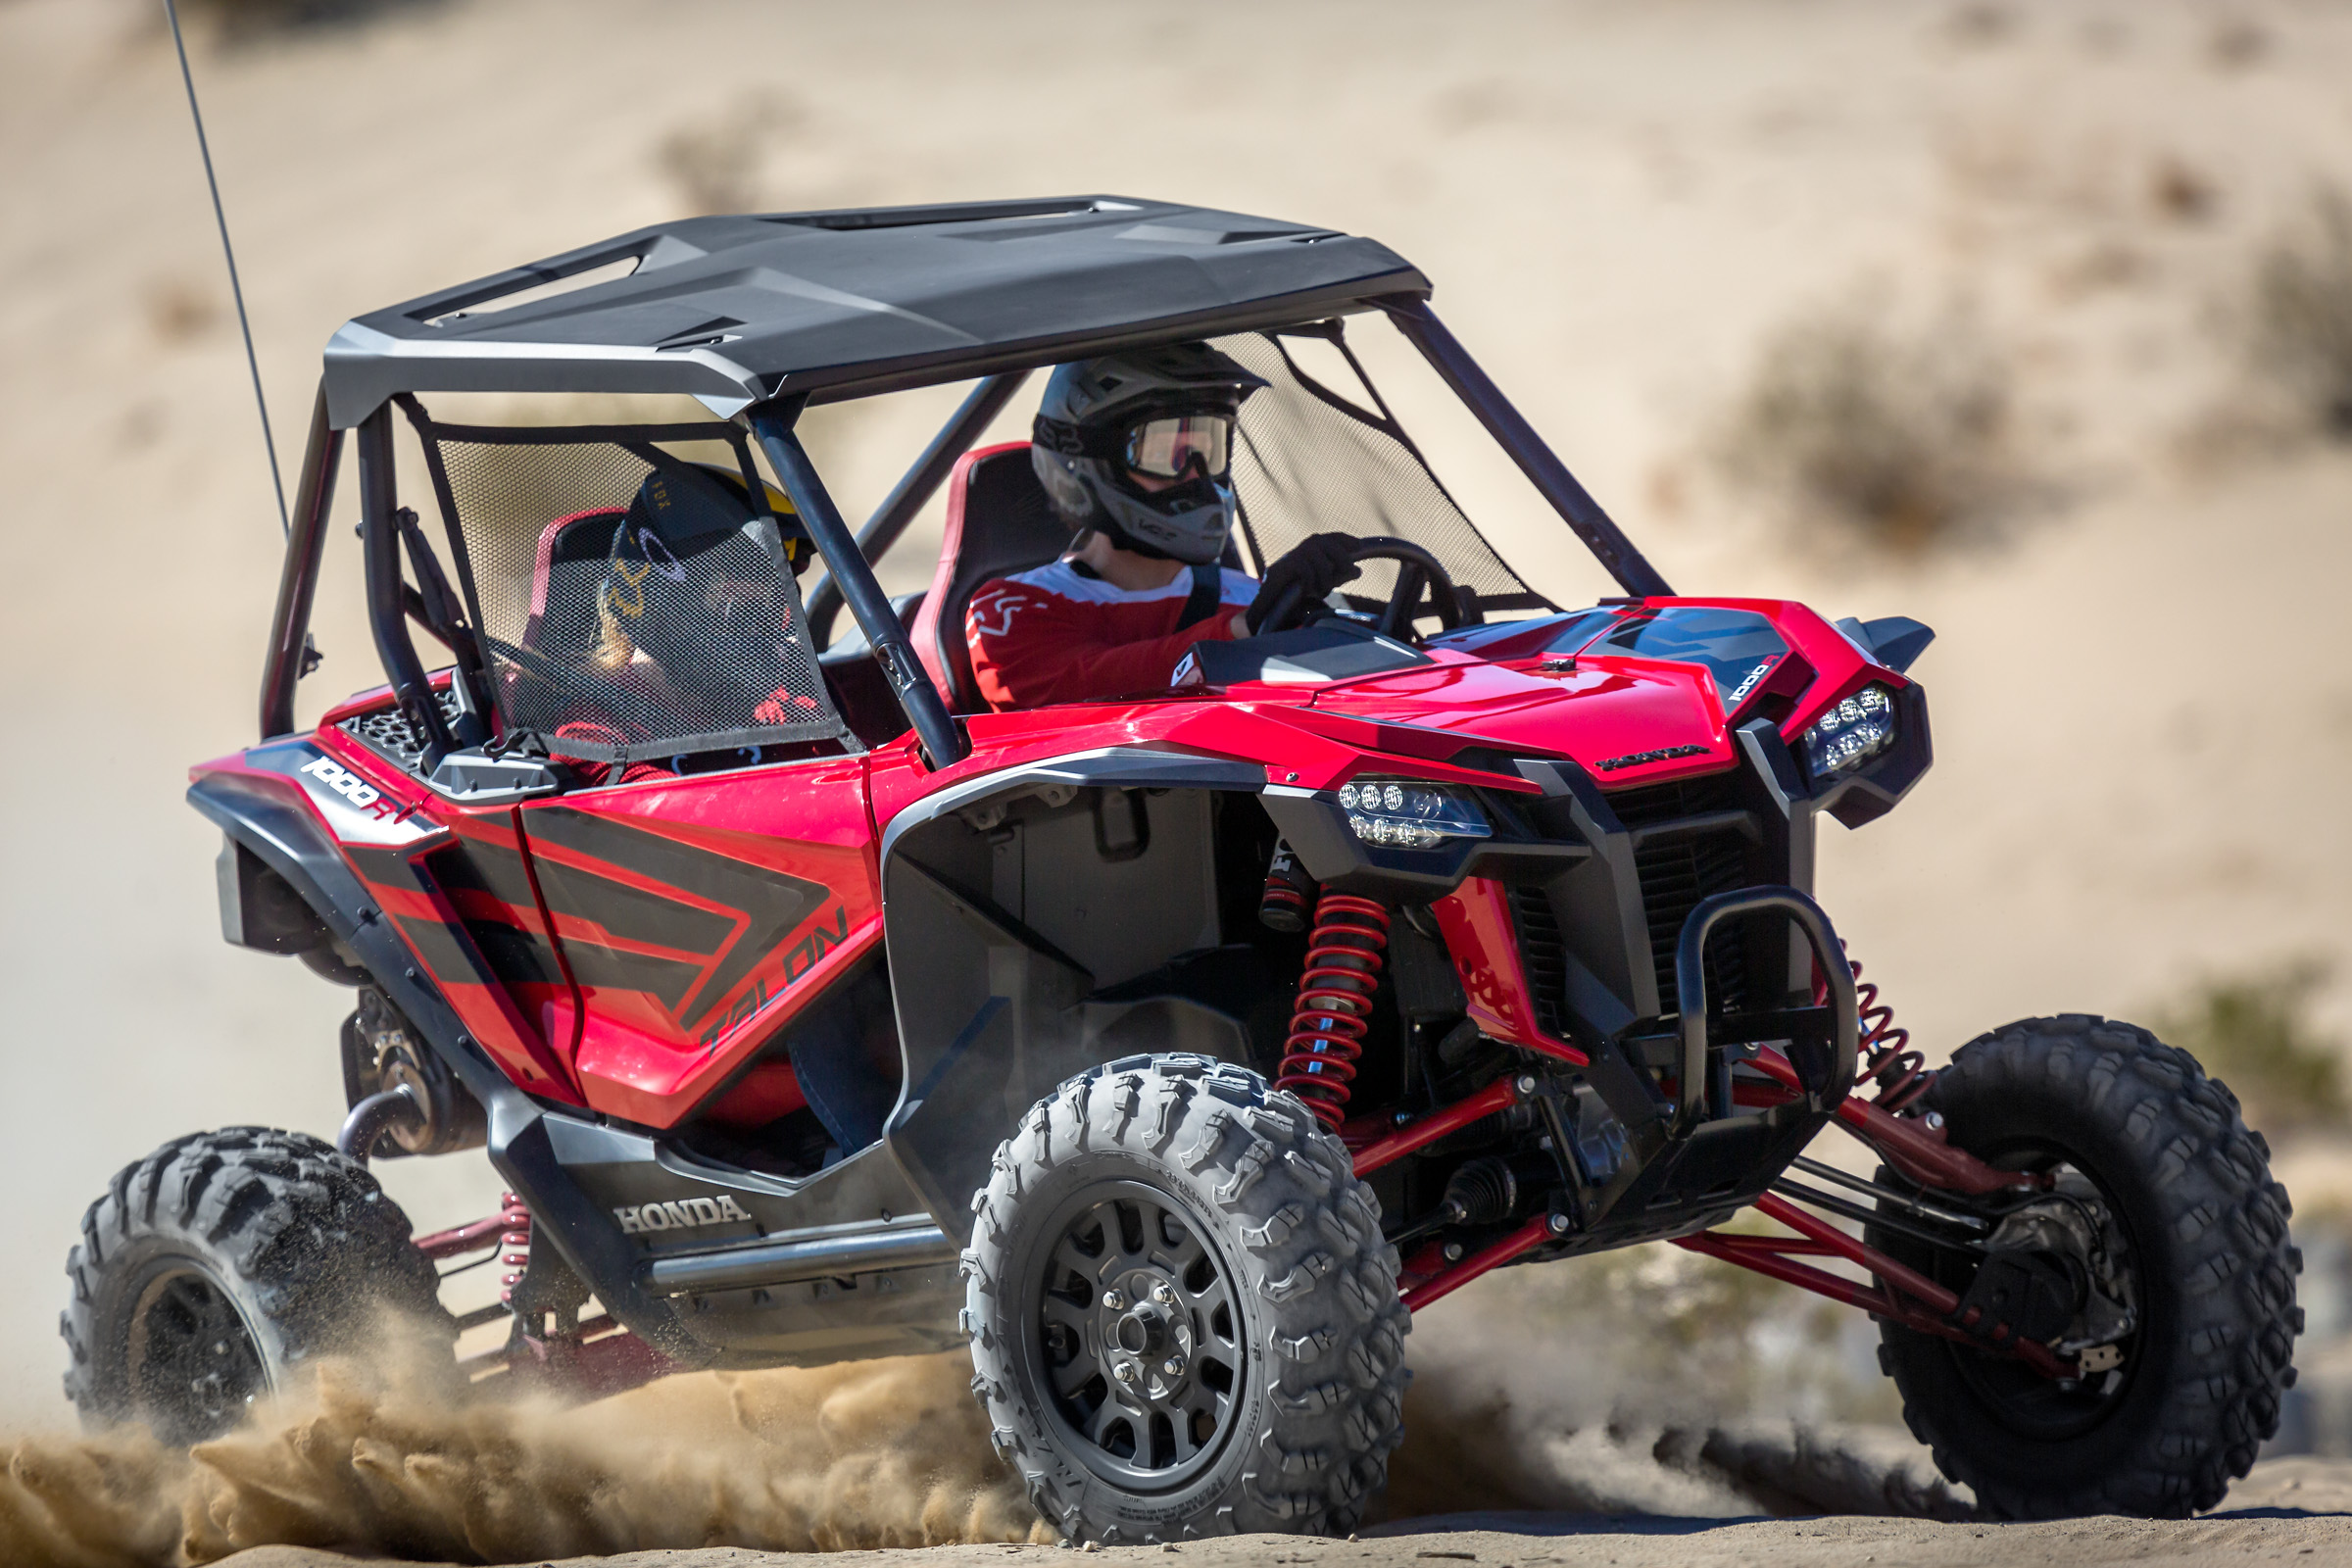 2019 Honda Talon Is Finally Here Utv Action Magazine